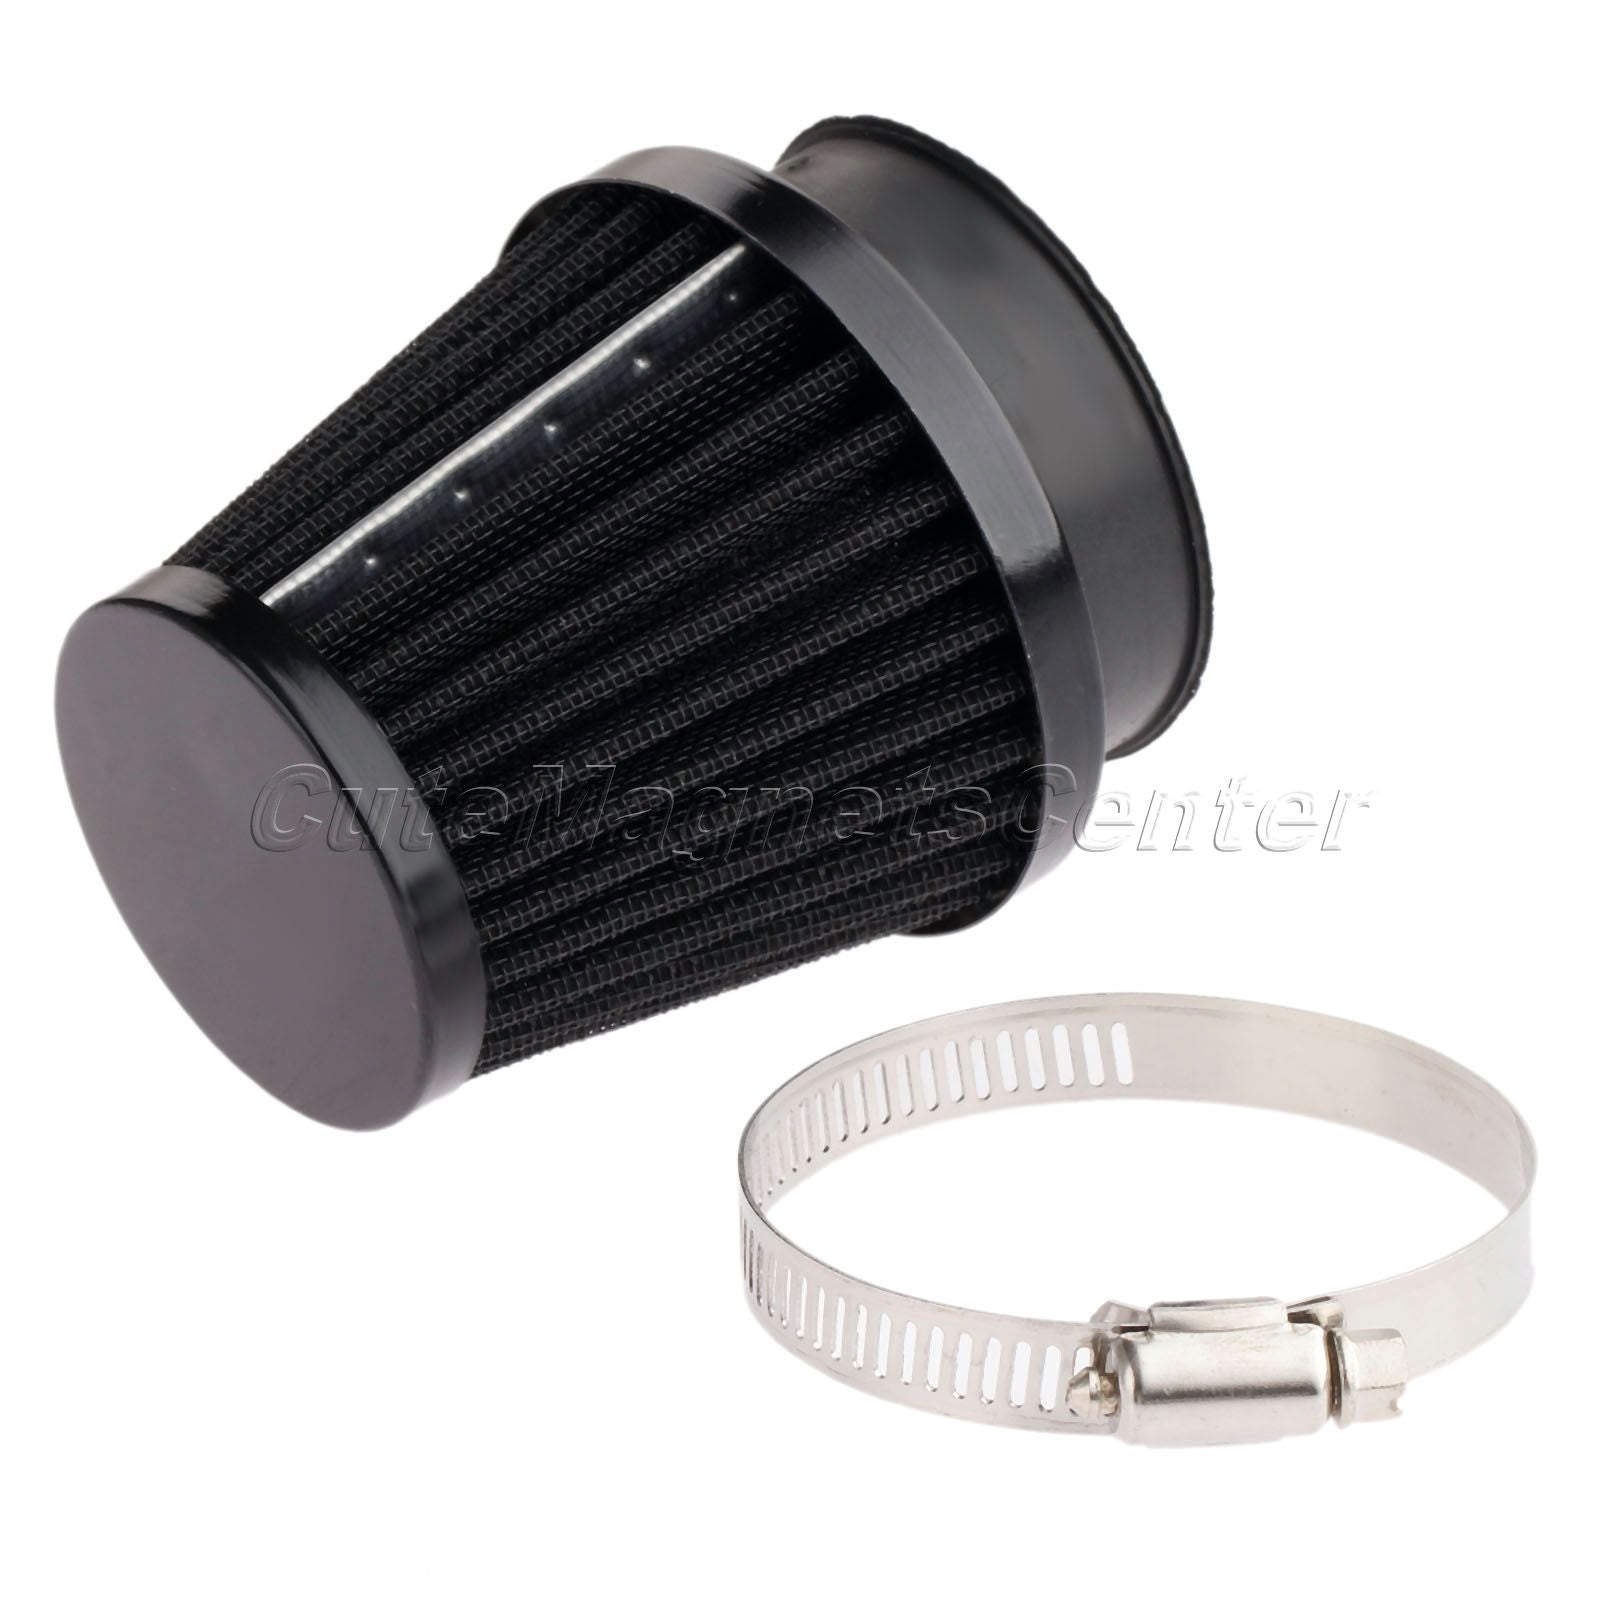 Mtsooning Universal Motorcycle Luchtfilter 54mm Luchtfilter Intake ...